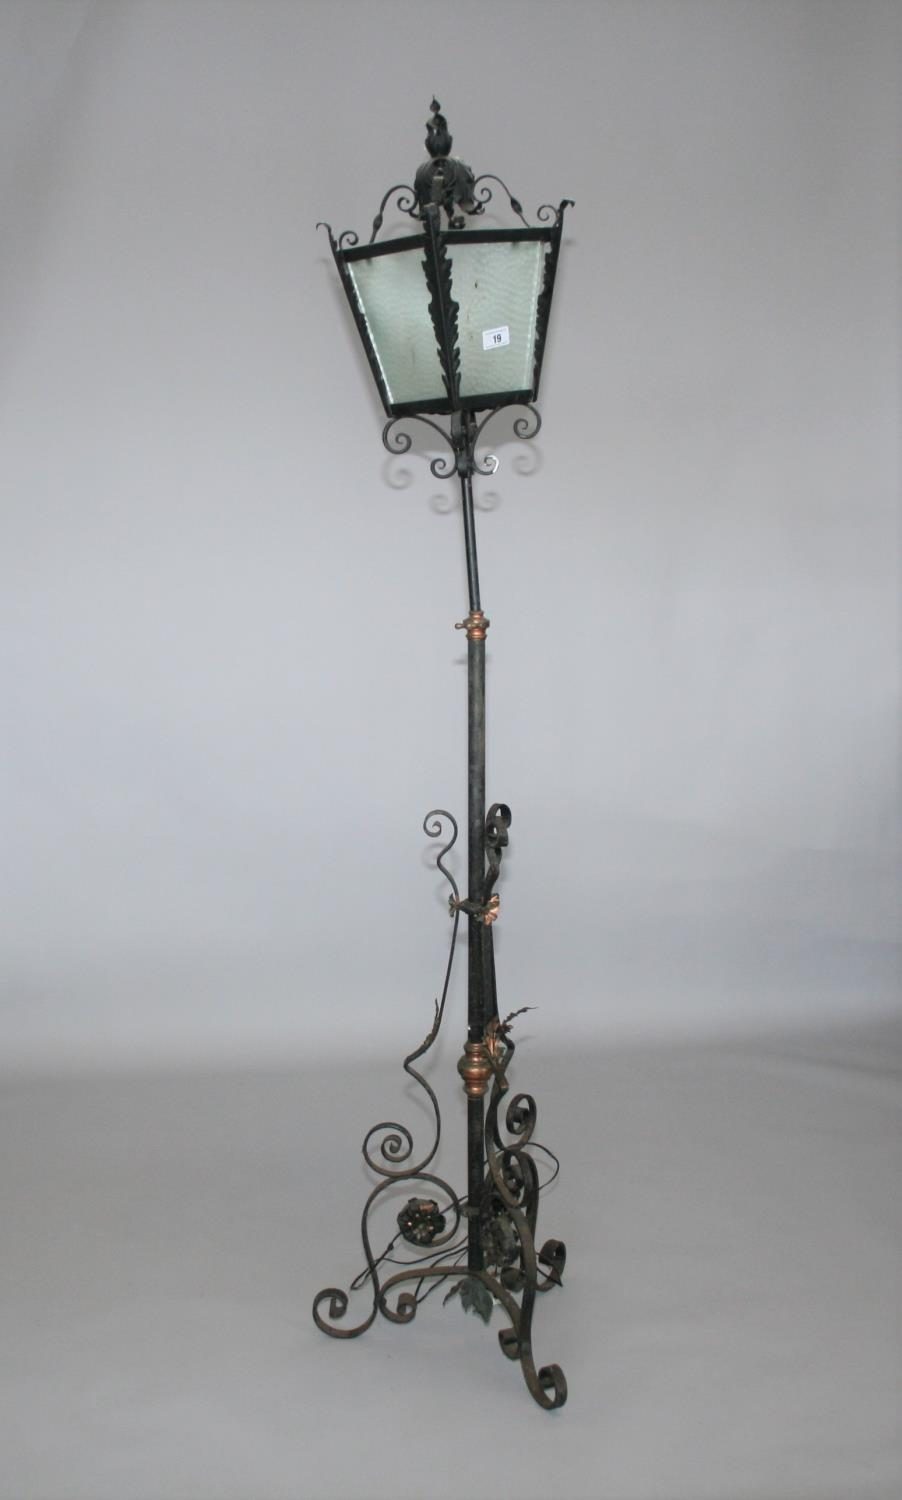 Wrought iron and copper telescopic lamp with lantern top 40 W x 90 H